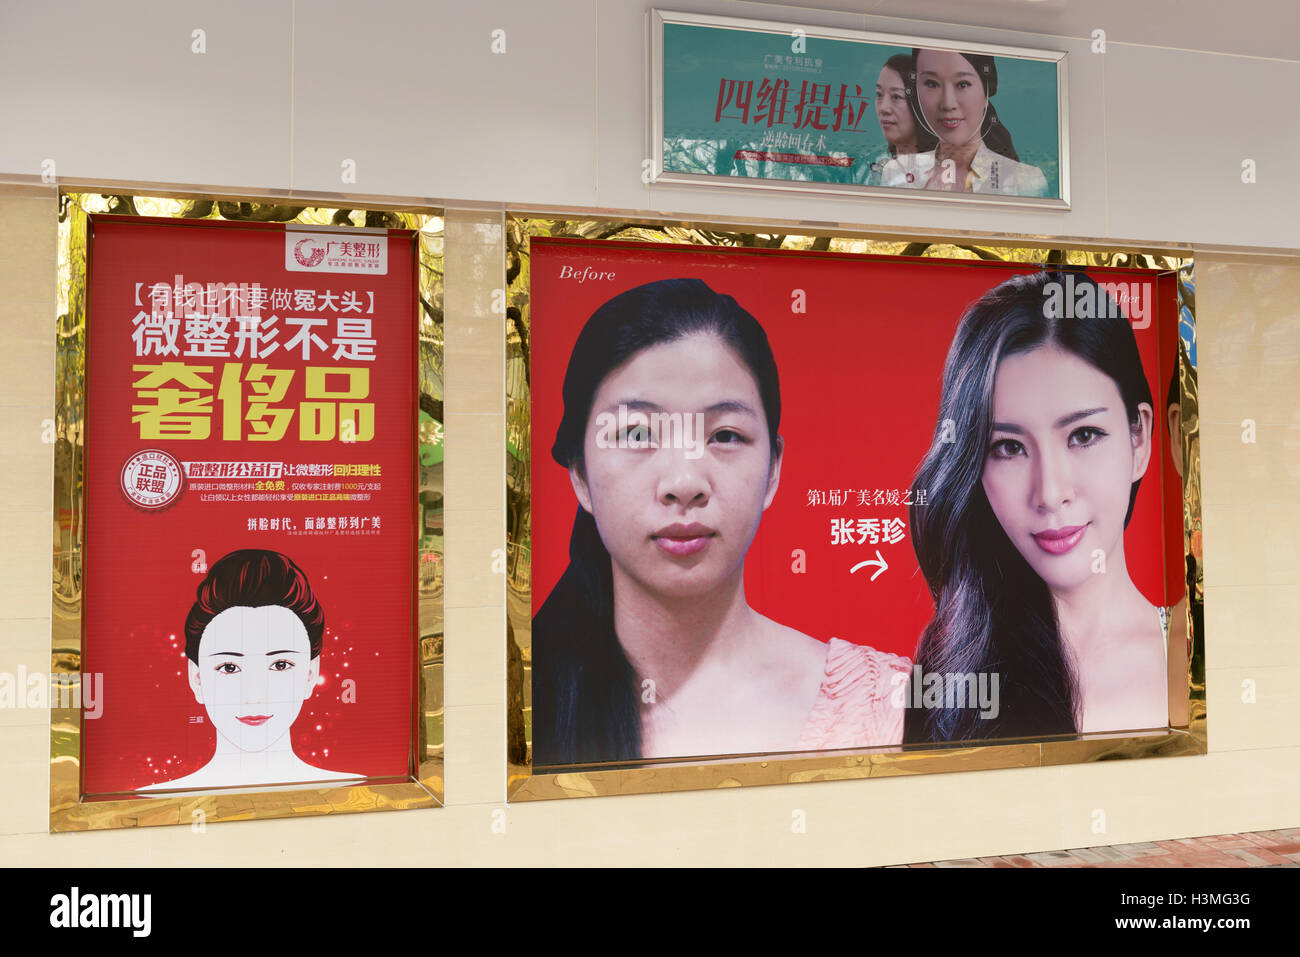 Plastic Surgery outdoor advertisement in China - Stock Image